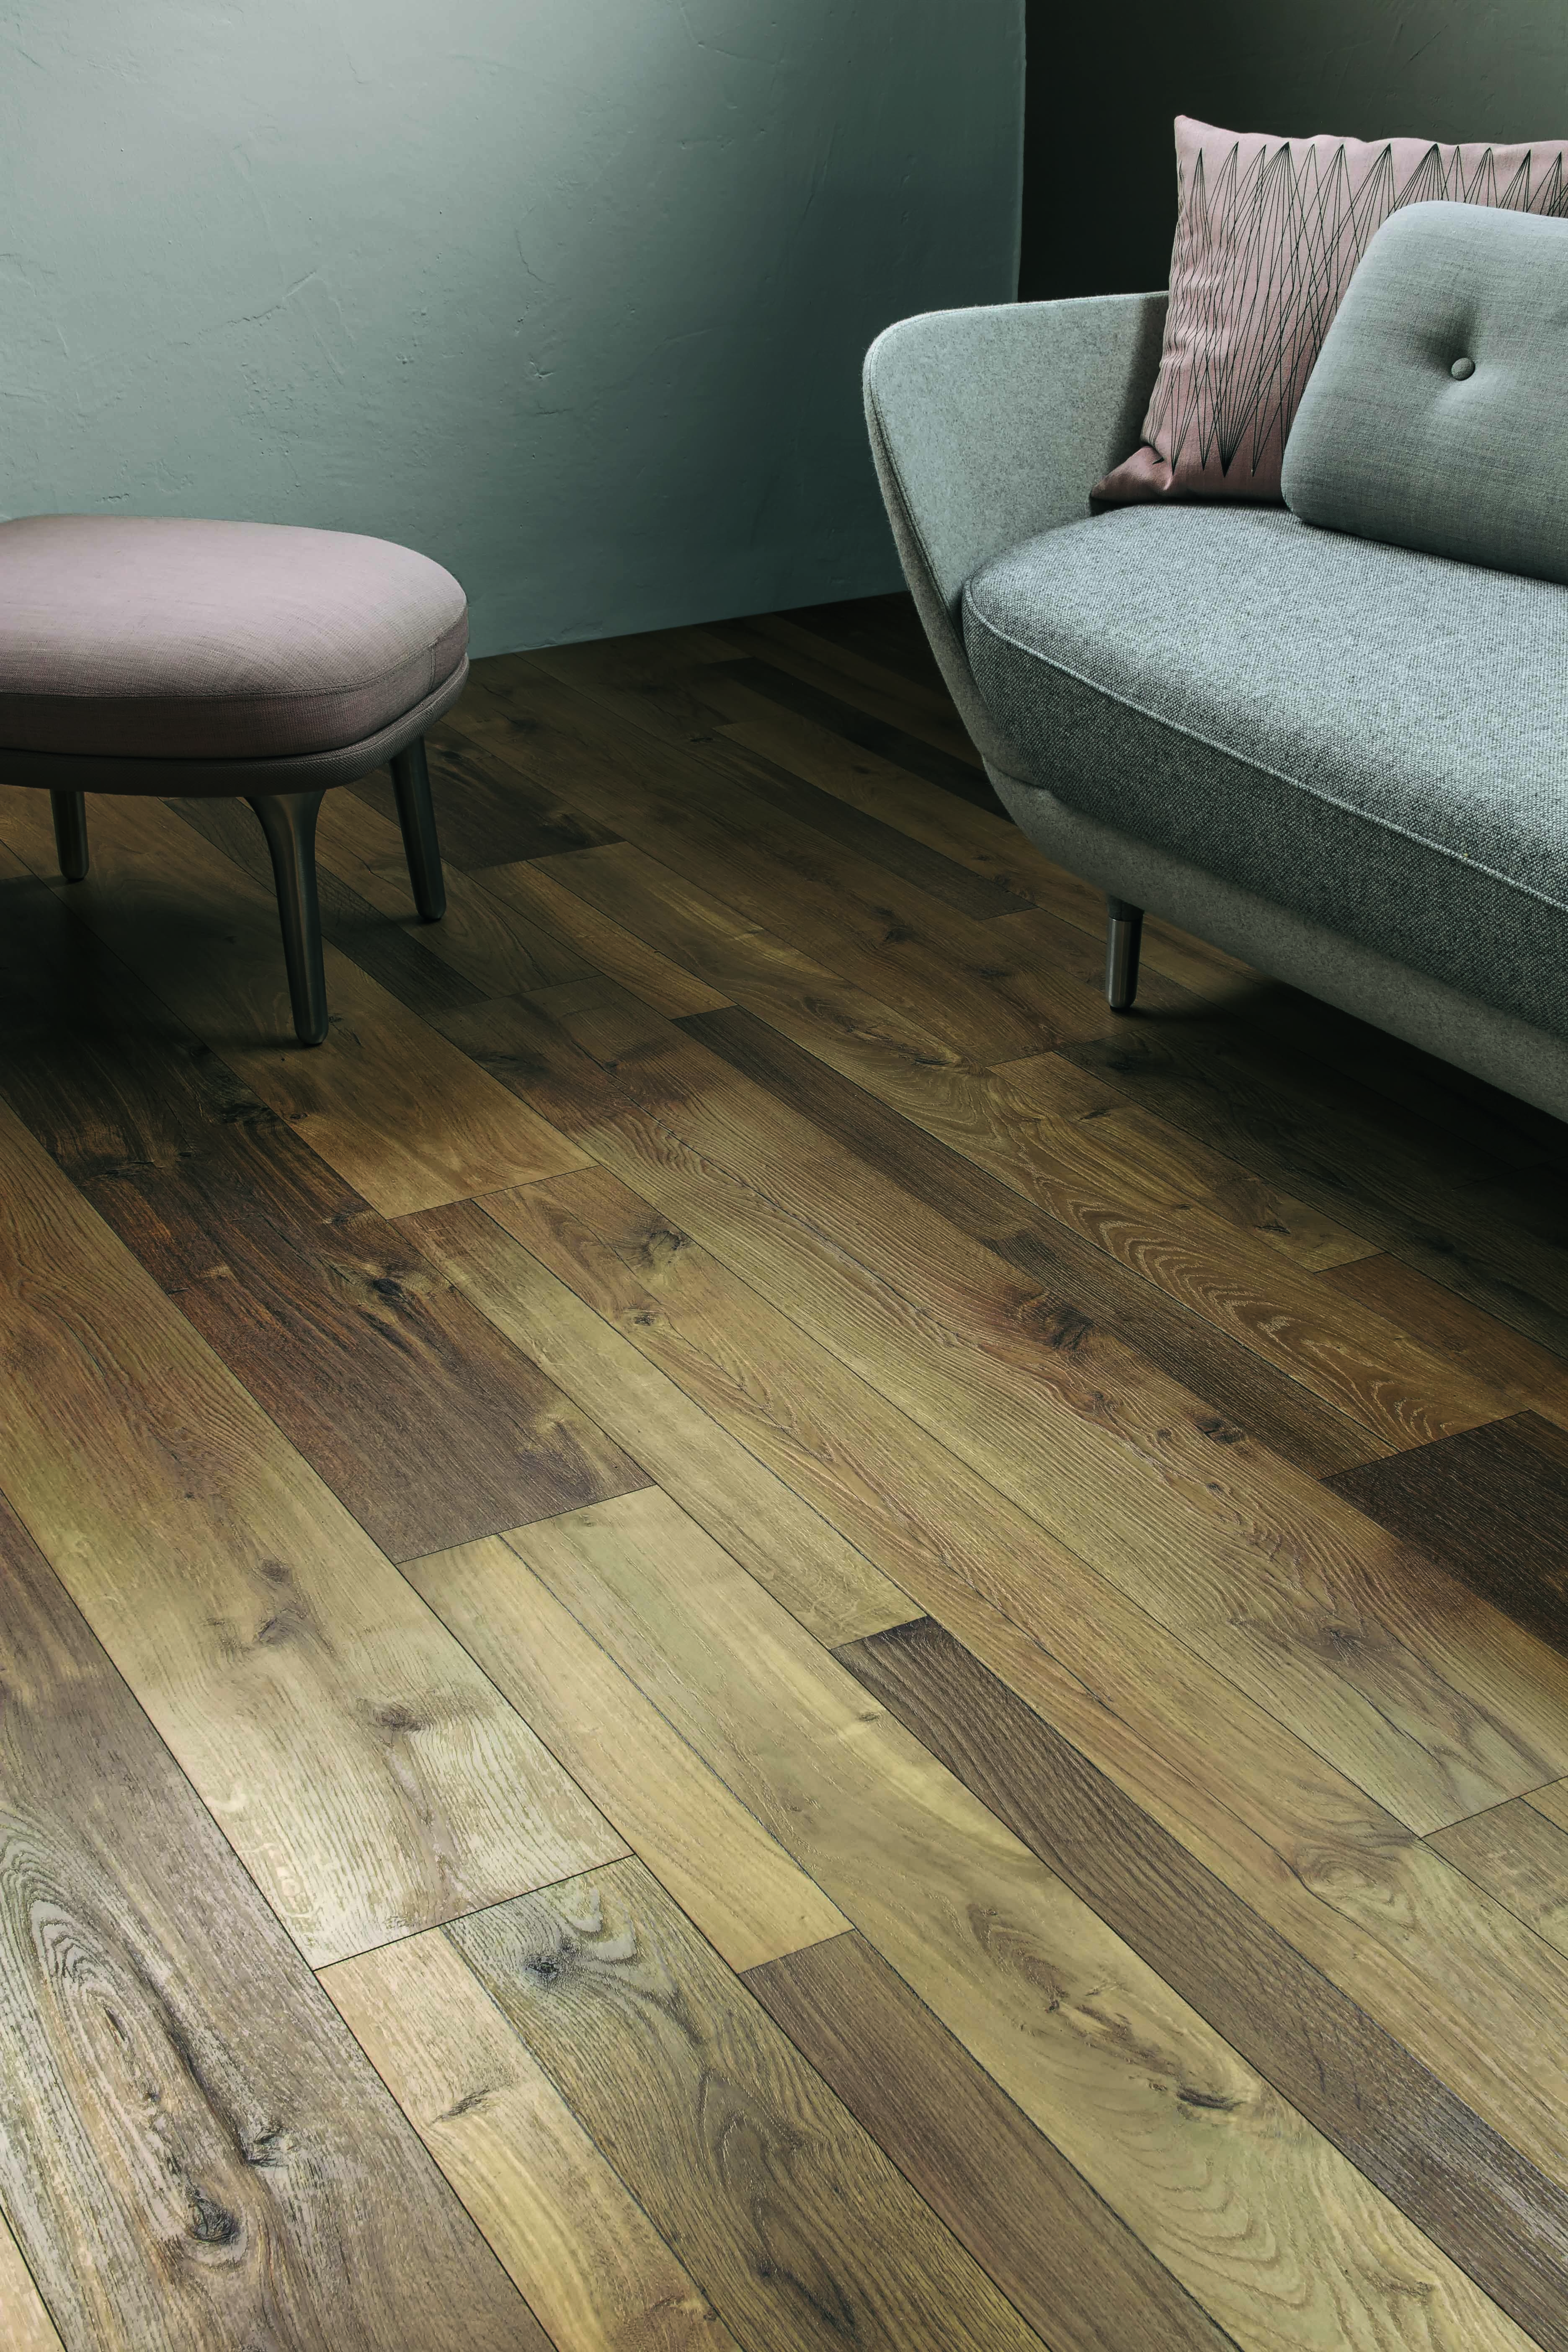 Ecofinishes Offers A Variety Of Greenguard Gold And Certified Laminate Collections We Offer Varying Widths From To They All Carry